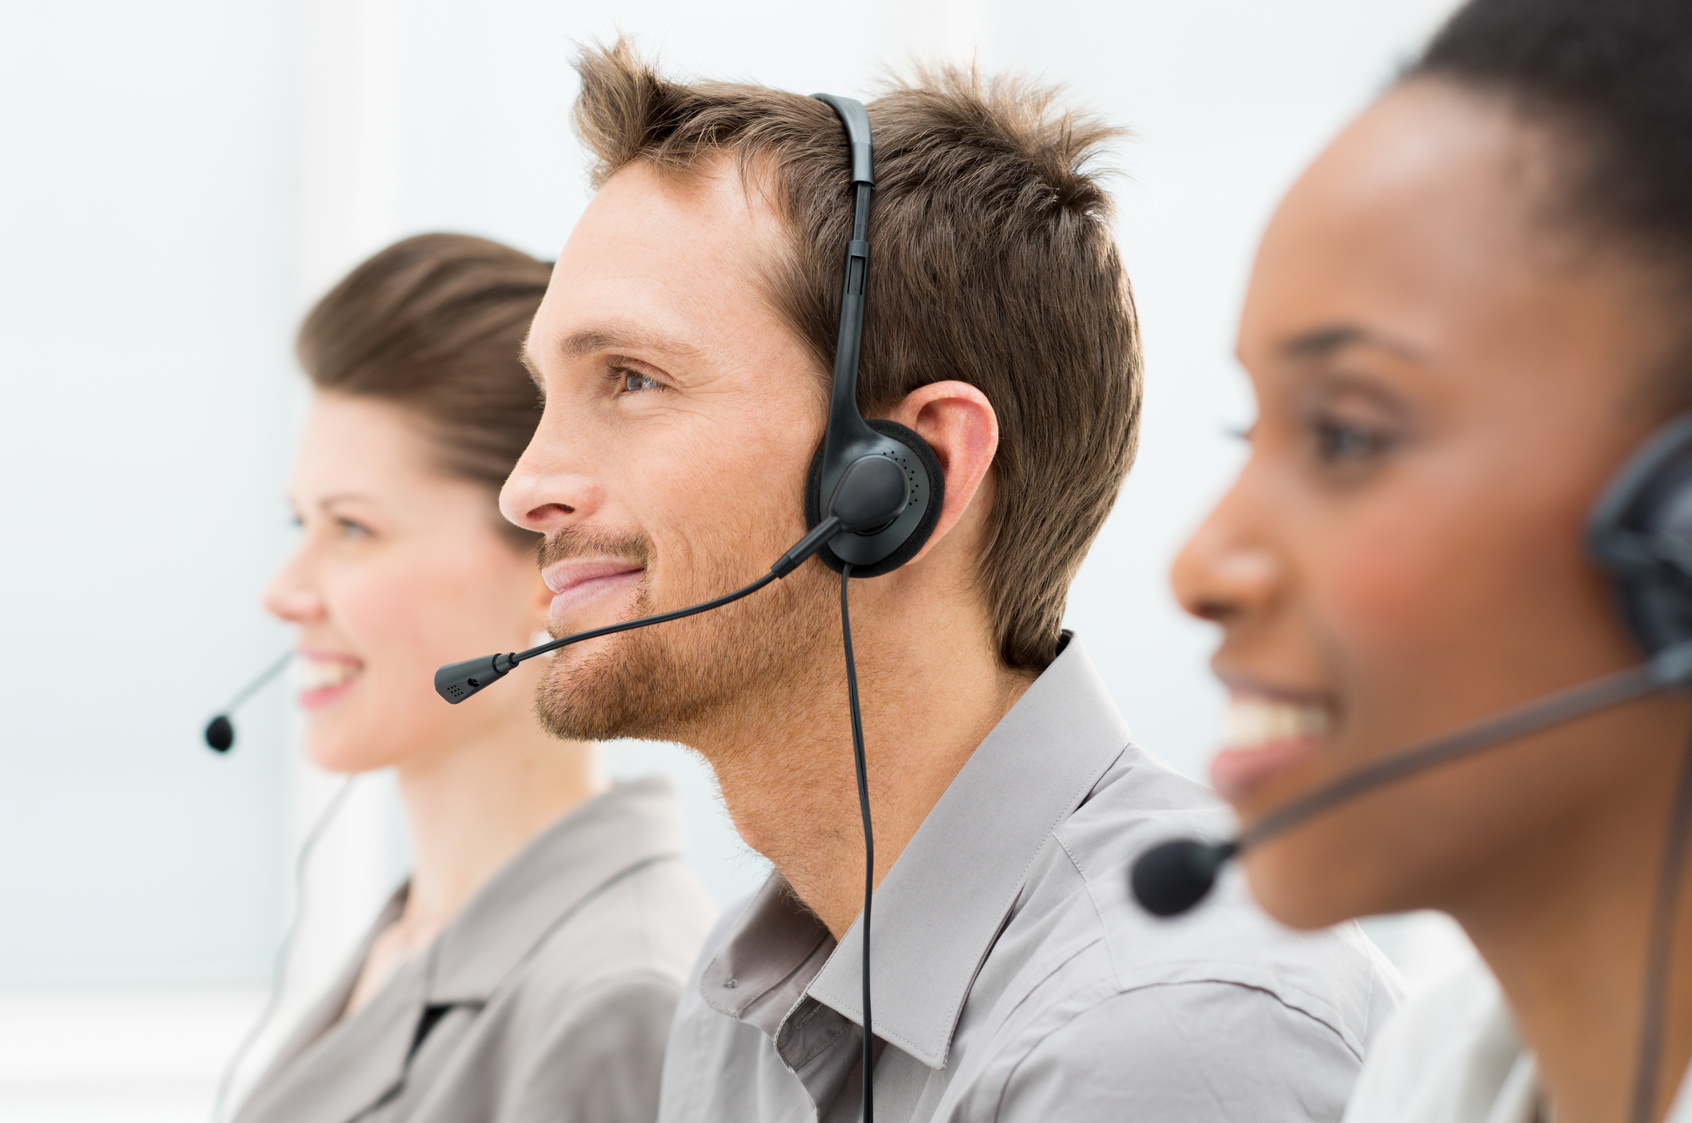 call center Answerforce is a live answering service based in the us we also provide other services like lead capture, appointment setting and much more.